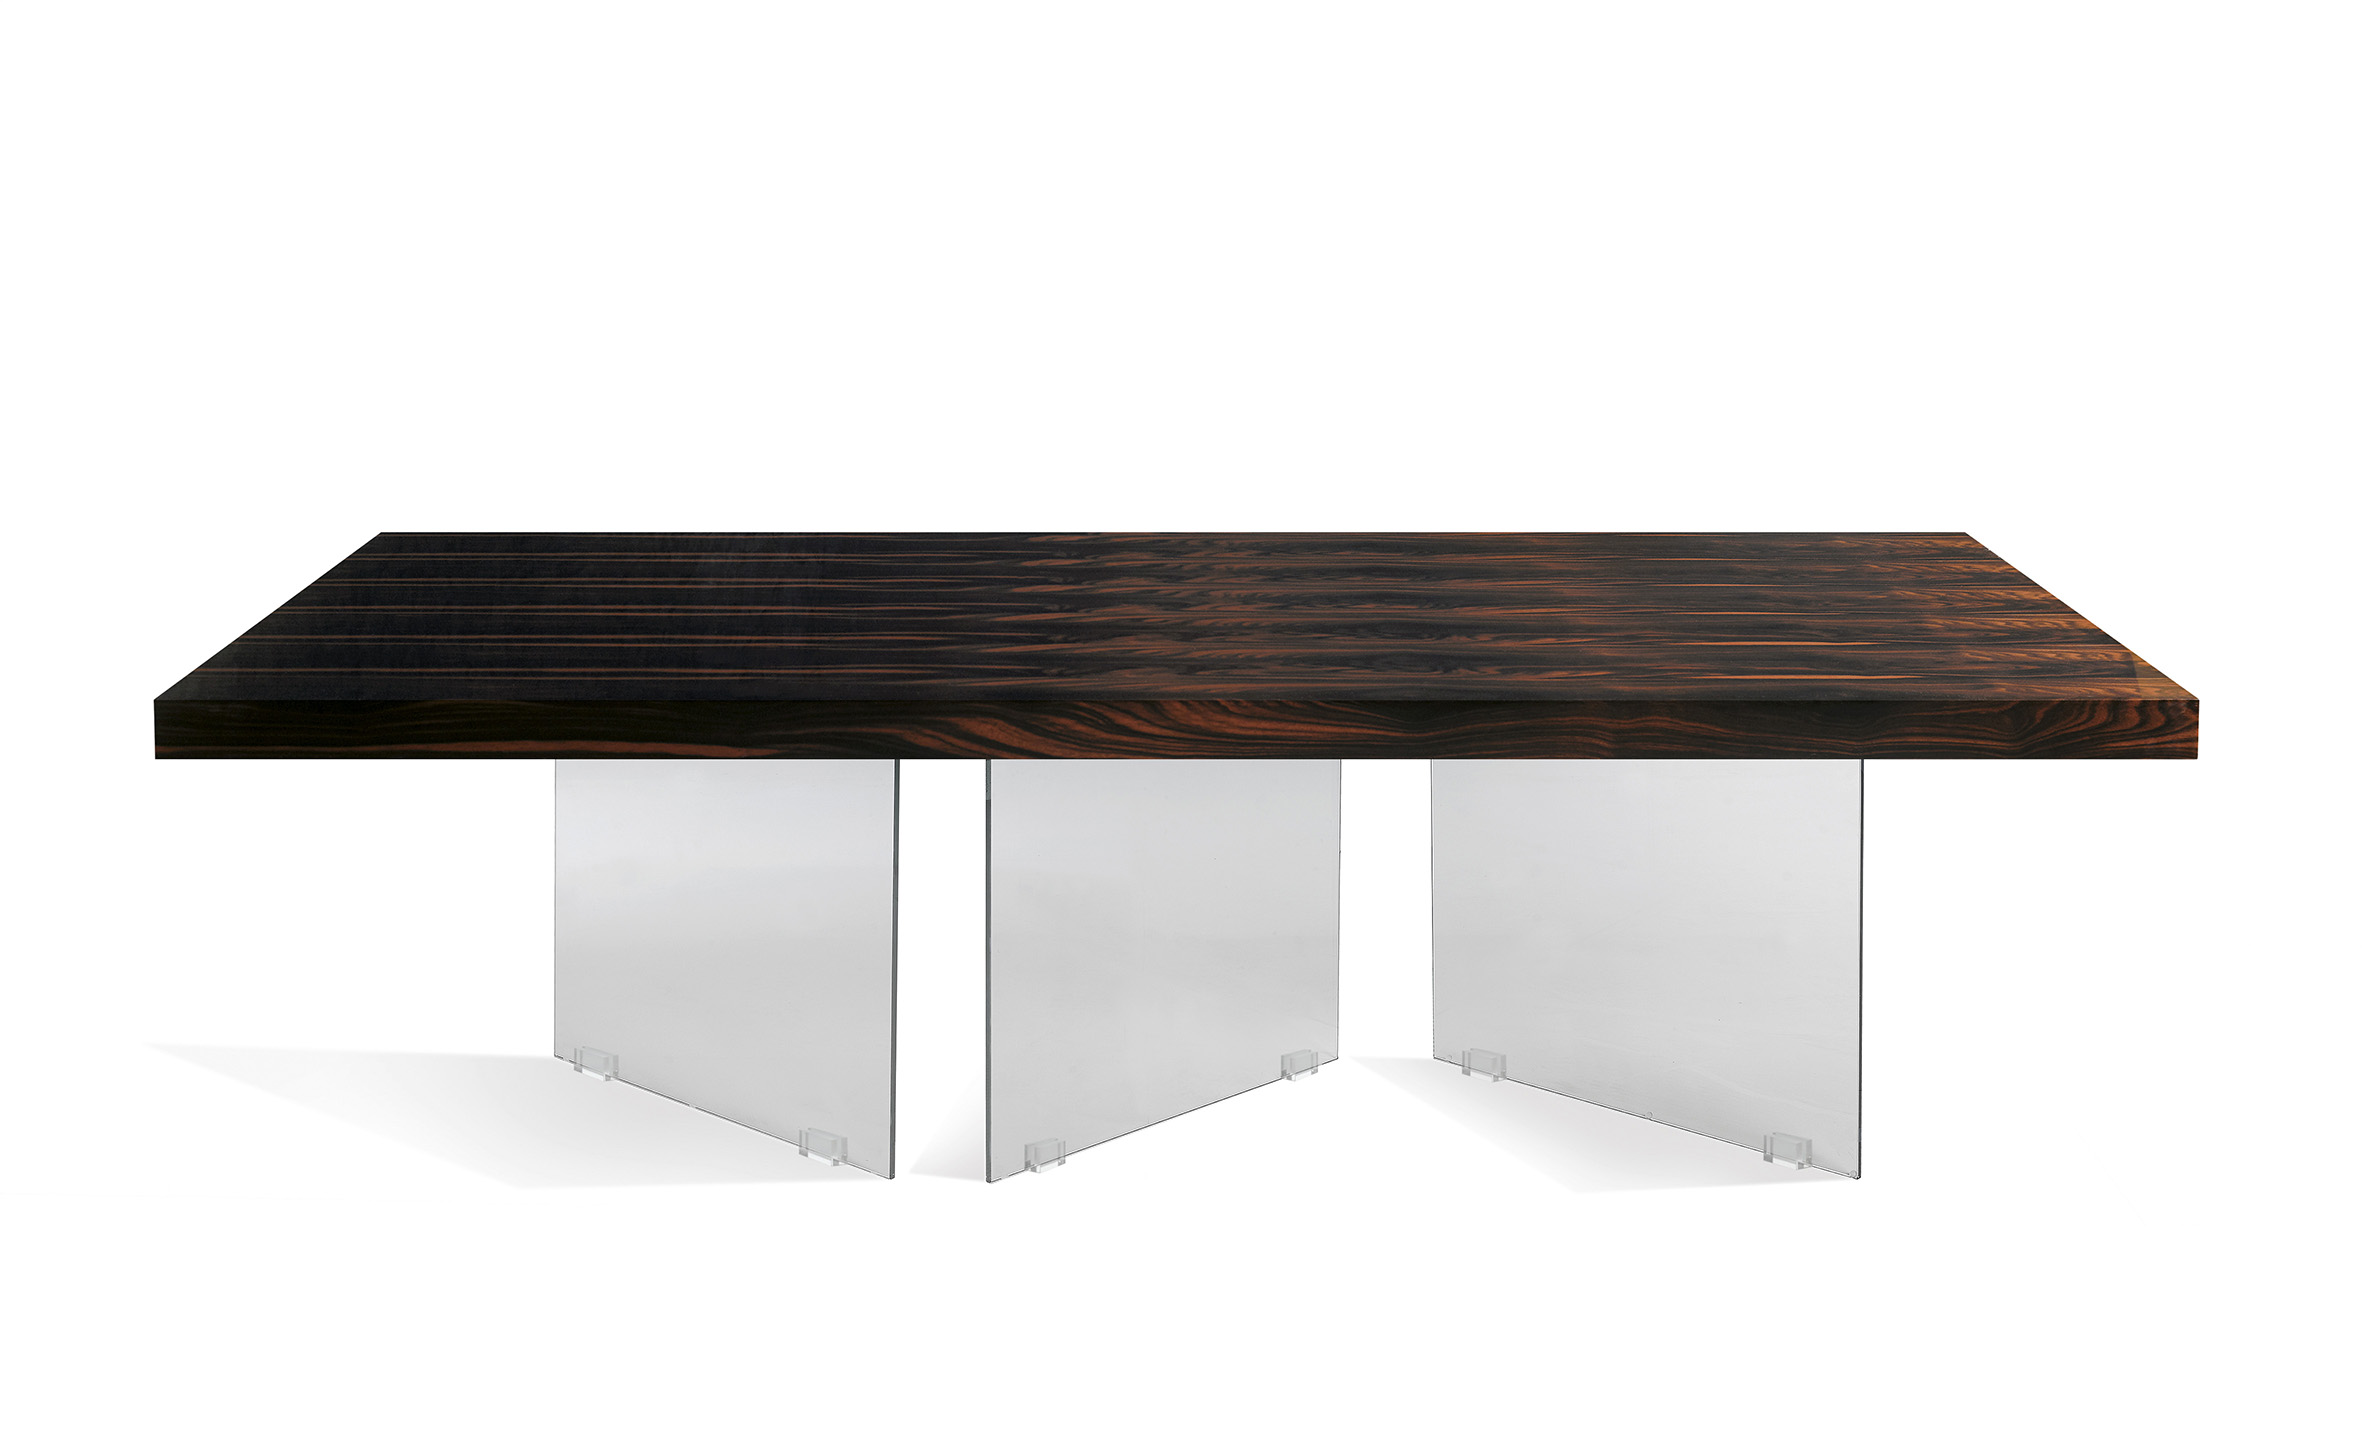 macassar ebony dining table, luxury dining table sets